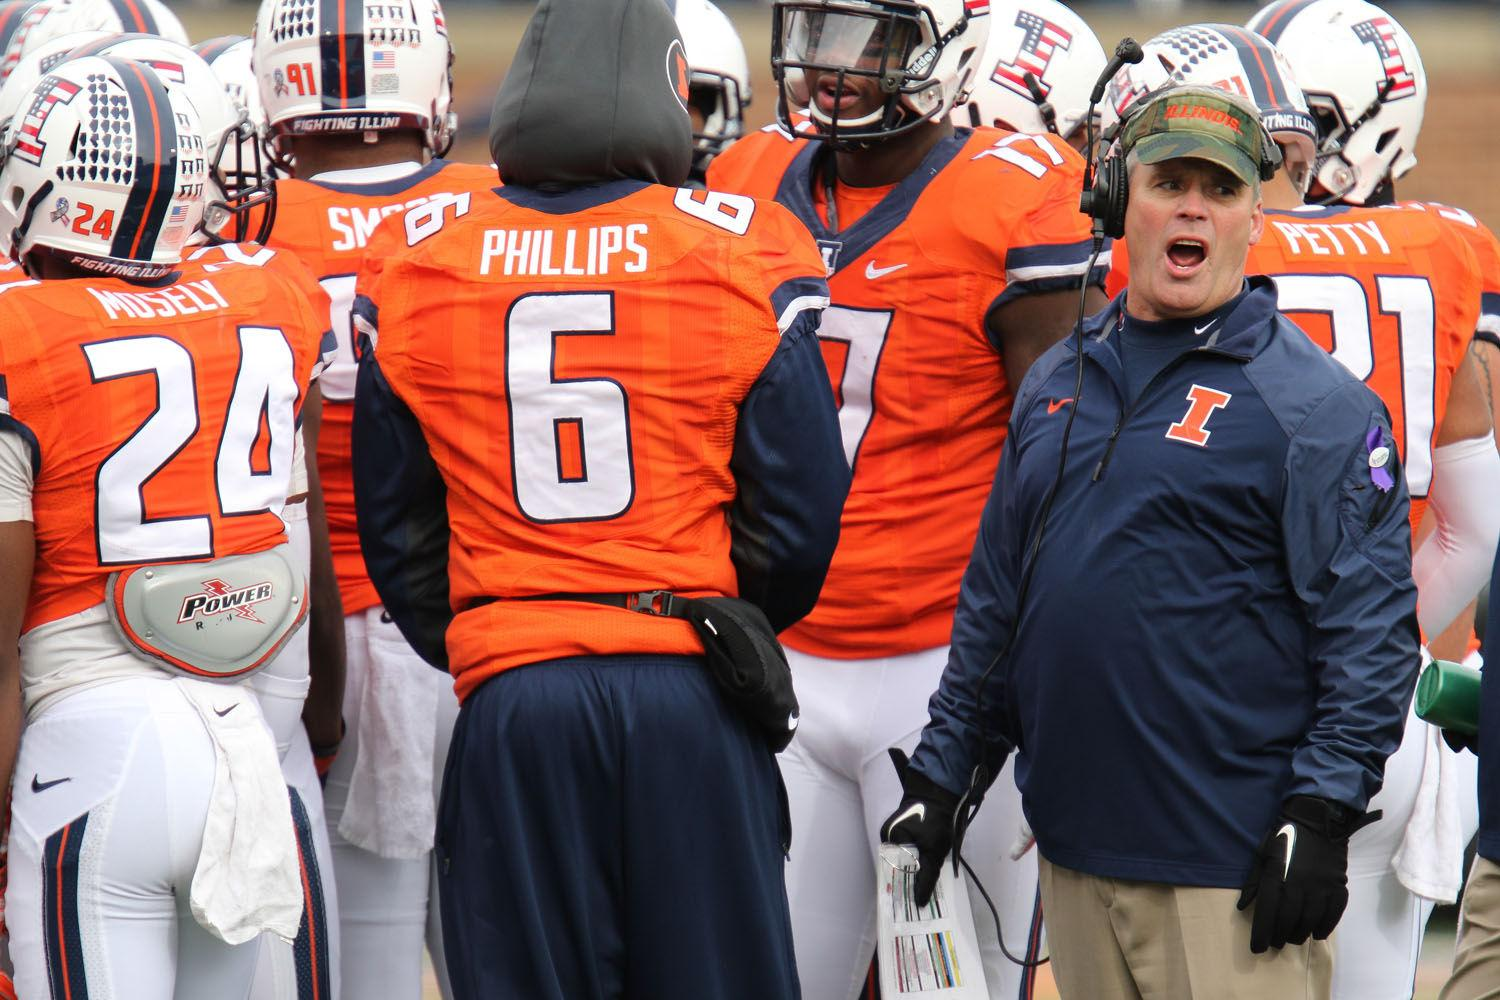 Illinois' head coach Tim Beckman speaks to a team trainer during the game against Iowa at Memorial Stadium on Nov. 15. The Illini lost 30-14.